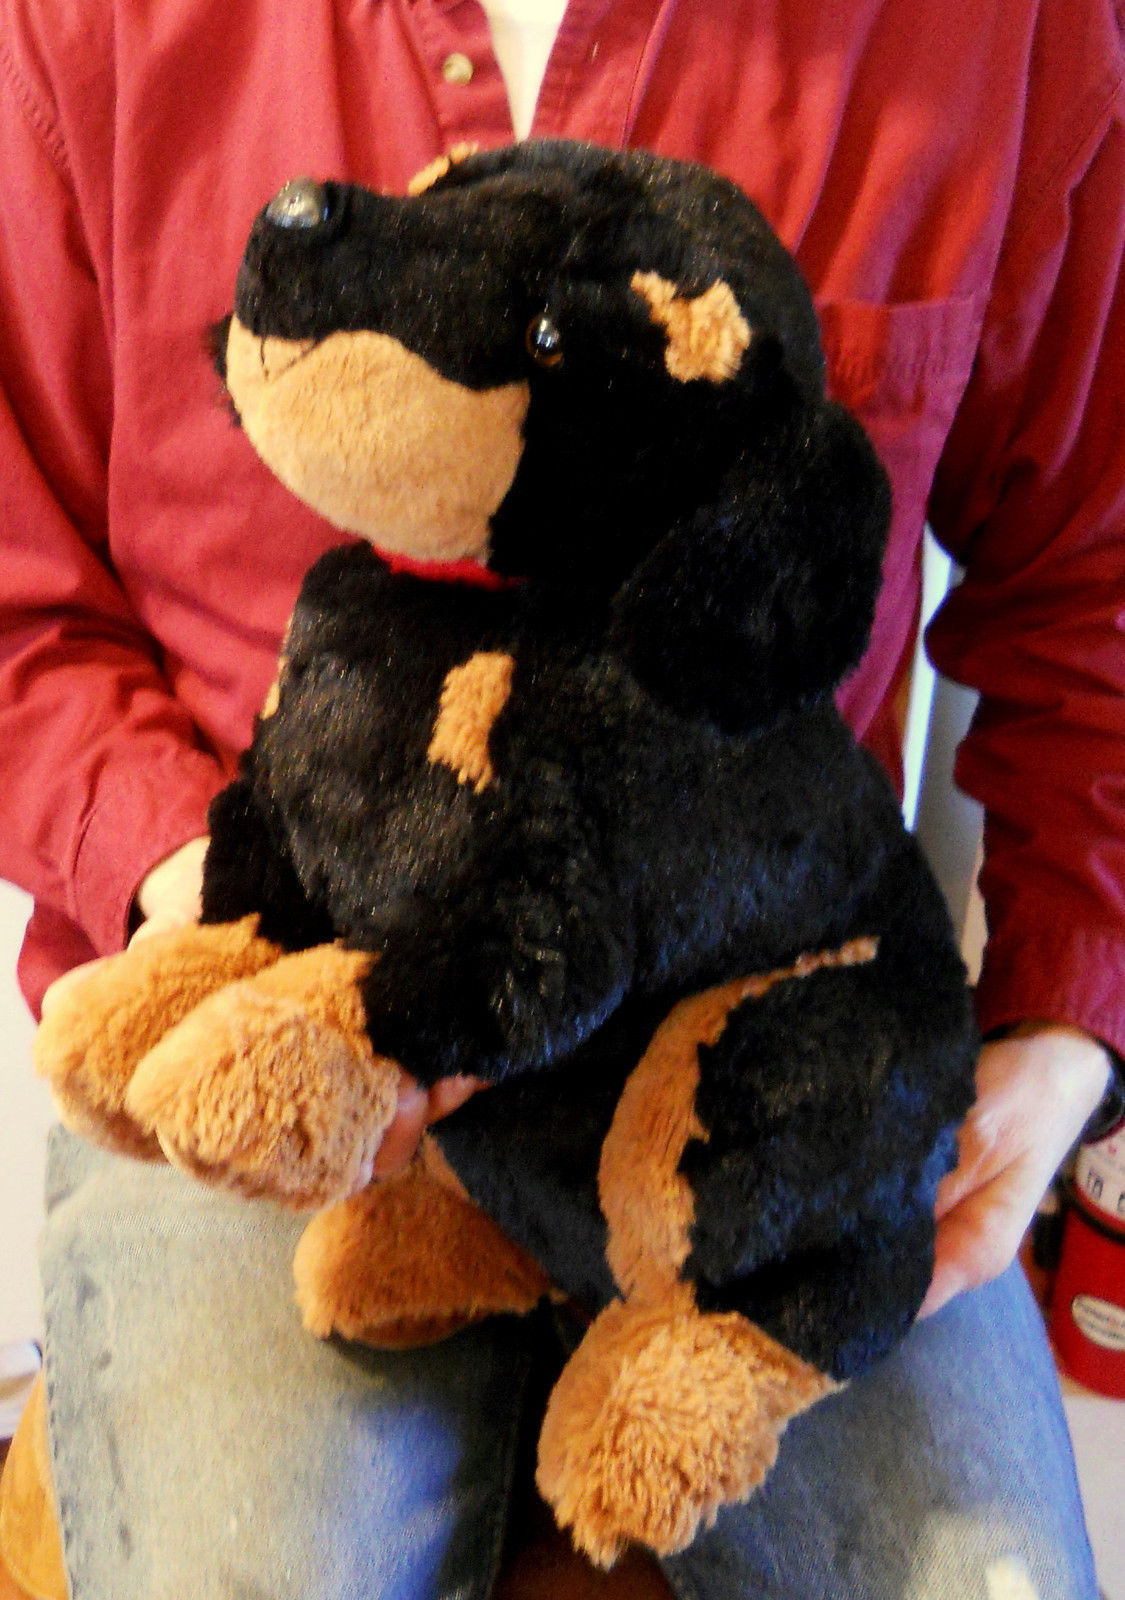 Large Rottweiler or Floppy Earred Doberman Stuffed Animal Plush Toy 19